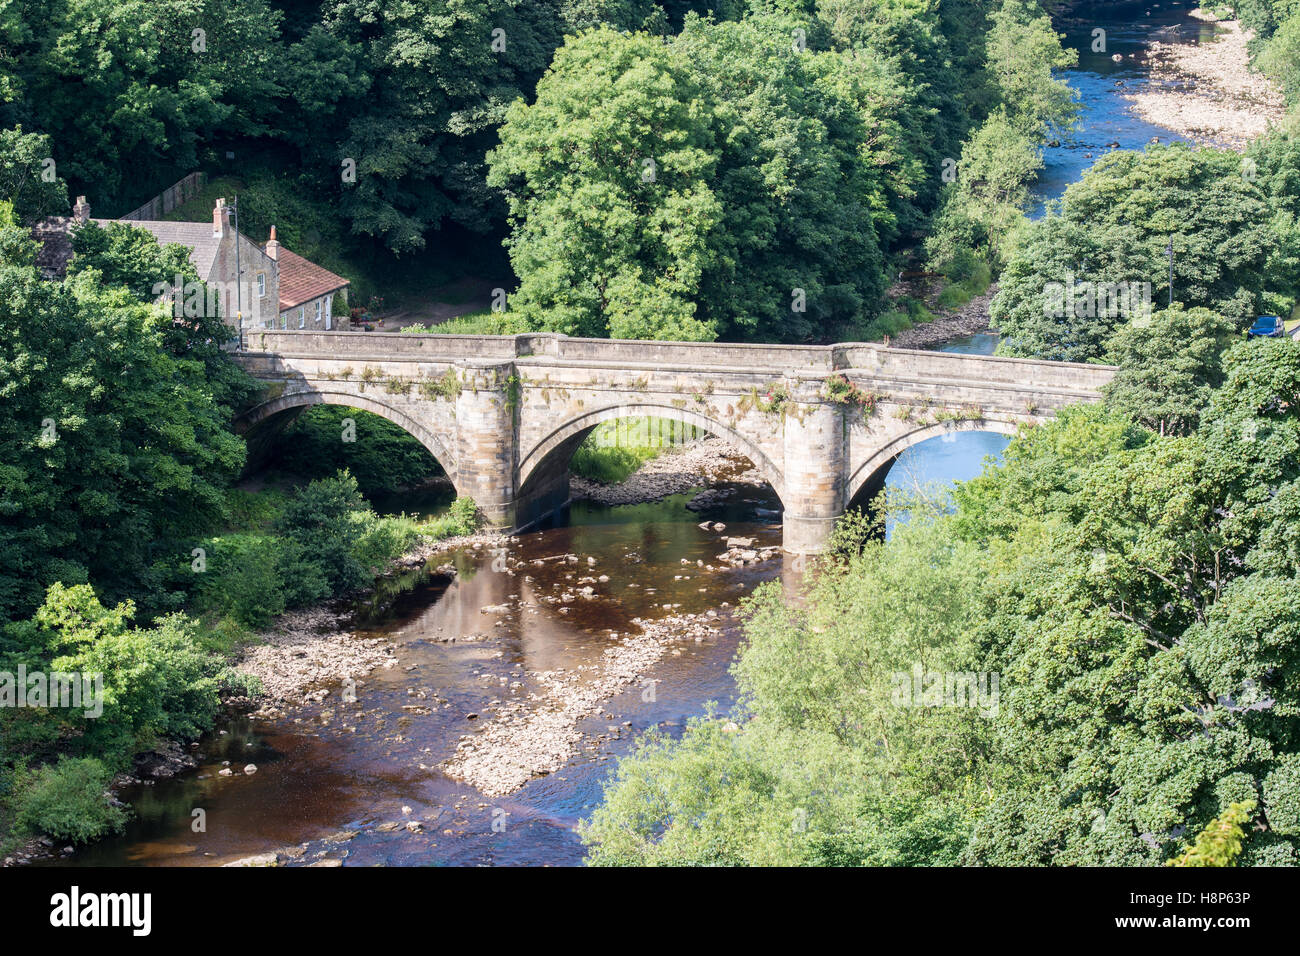 UK, England, Yorkshire, Richmond - An old stone bridge in the city of Richmond located in Northern Yorkshire. - Stock Image